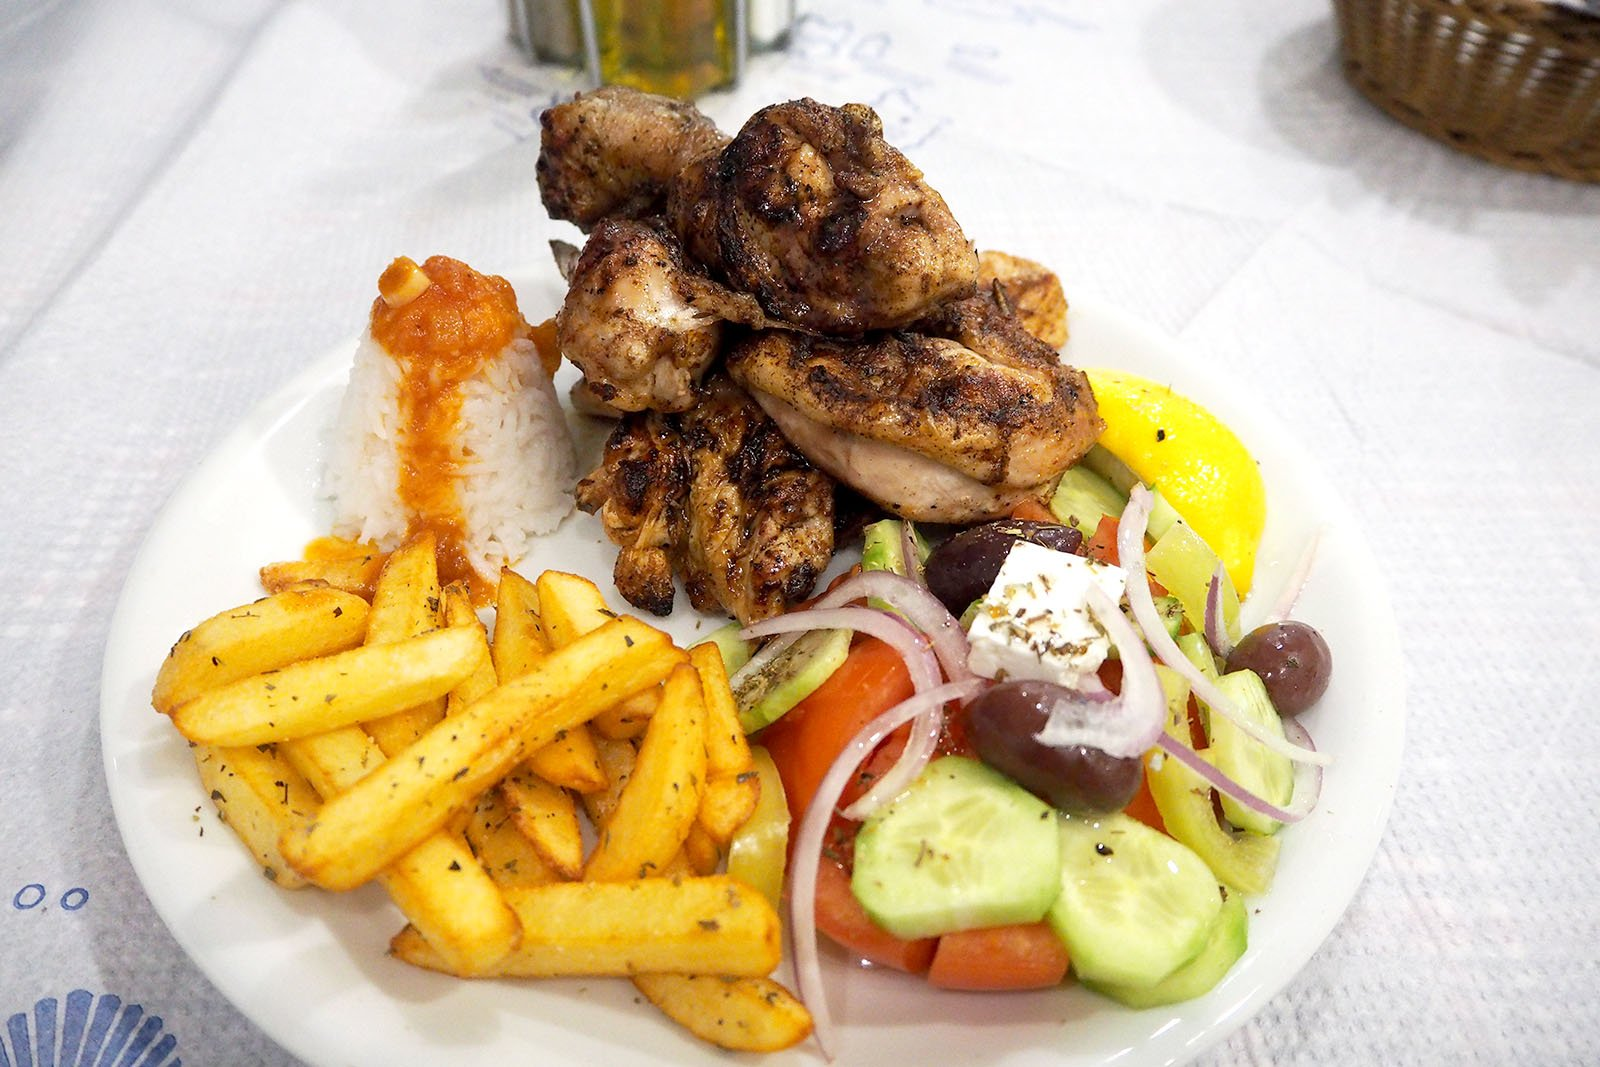 grilled chicken at Fira in Santorini